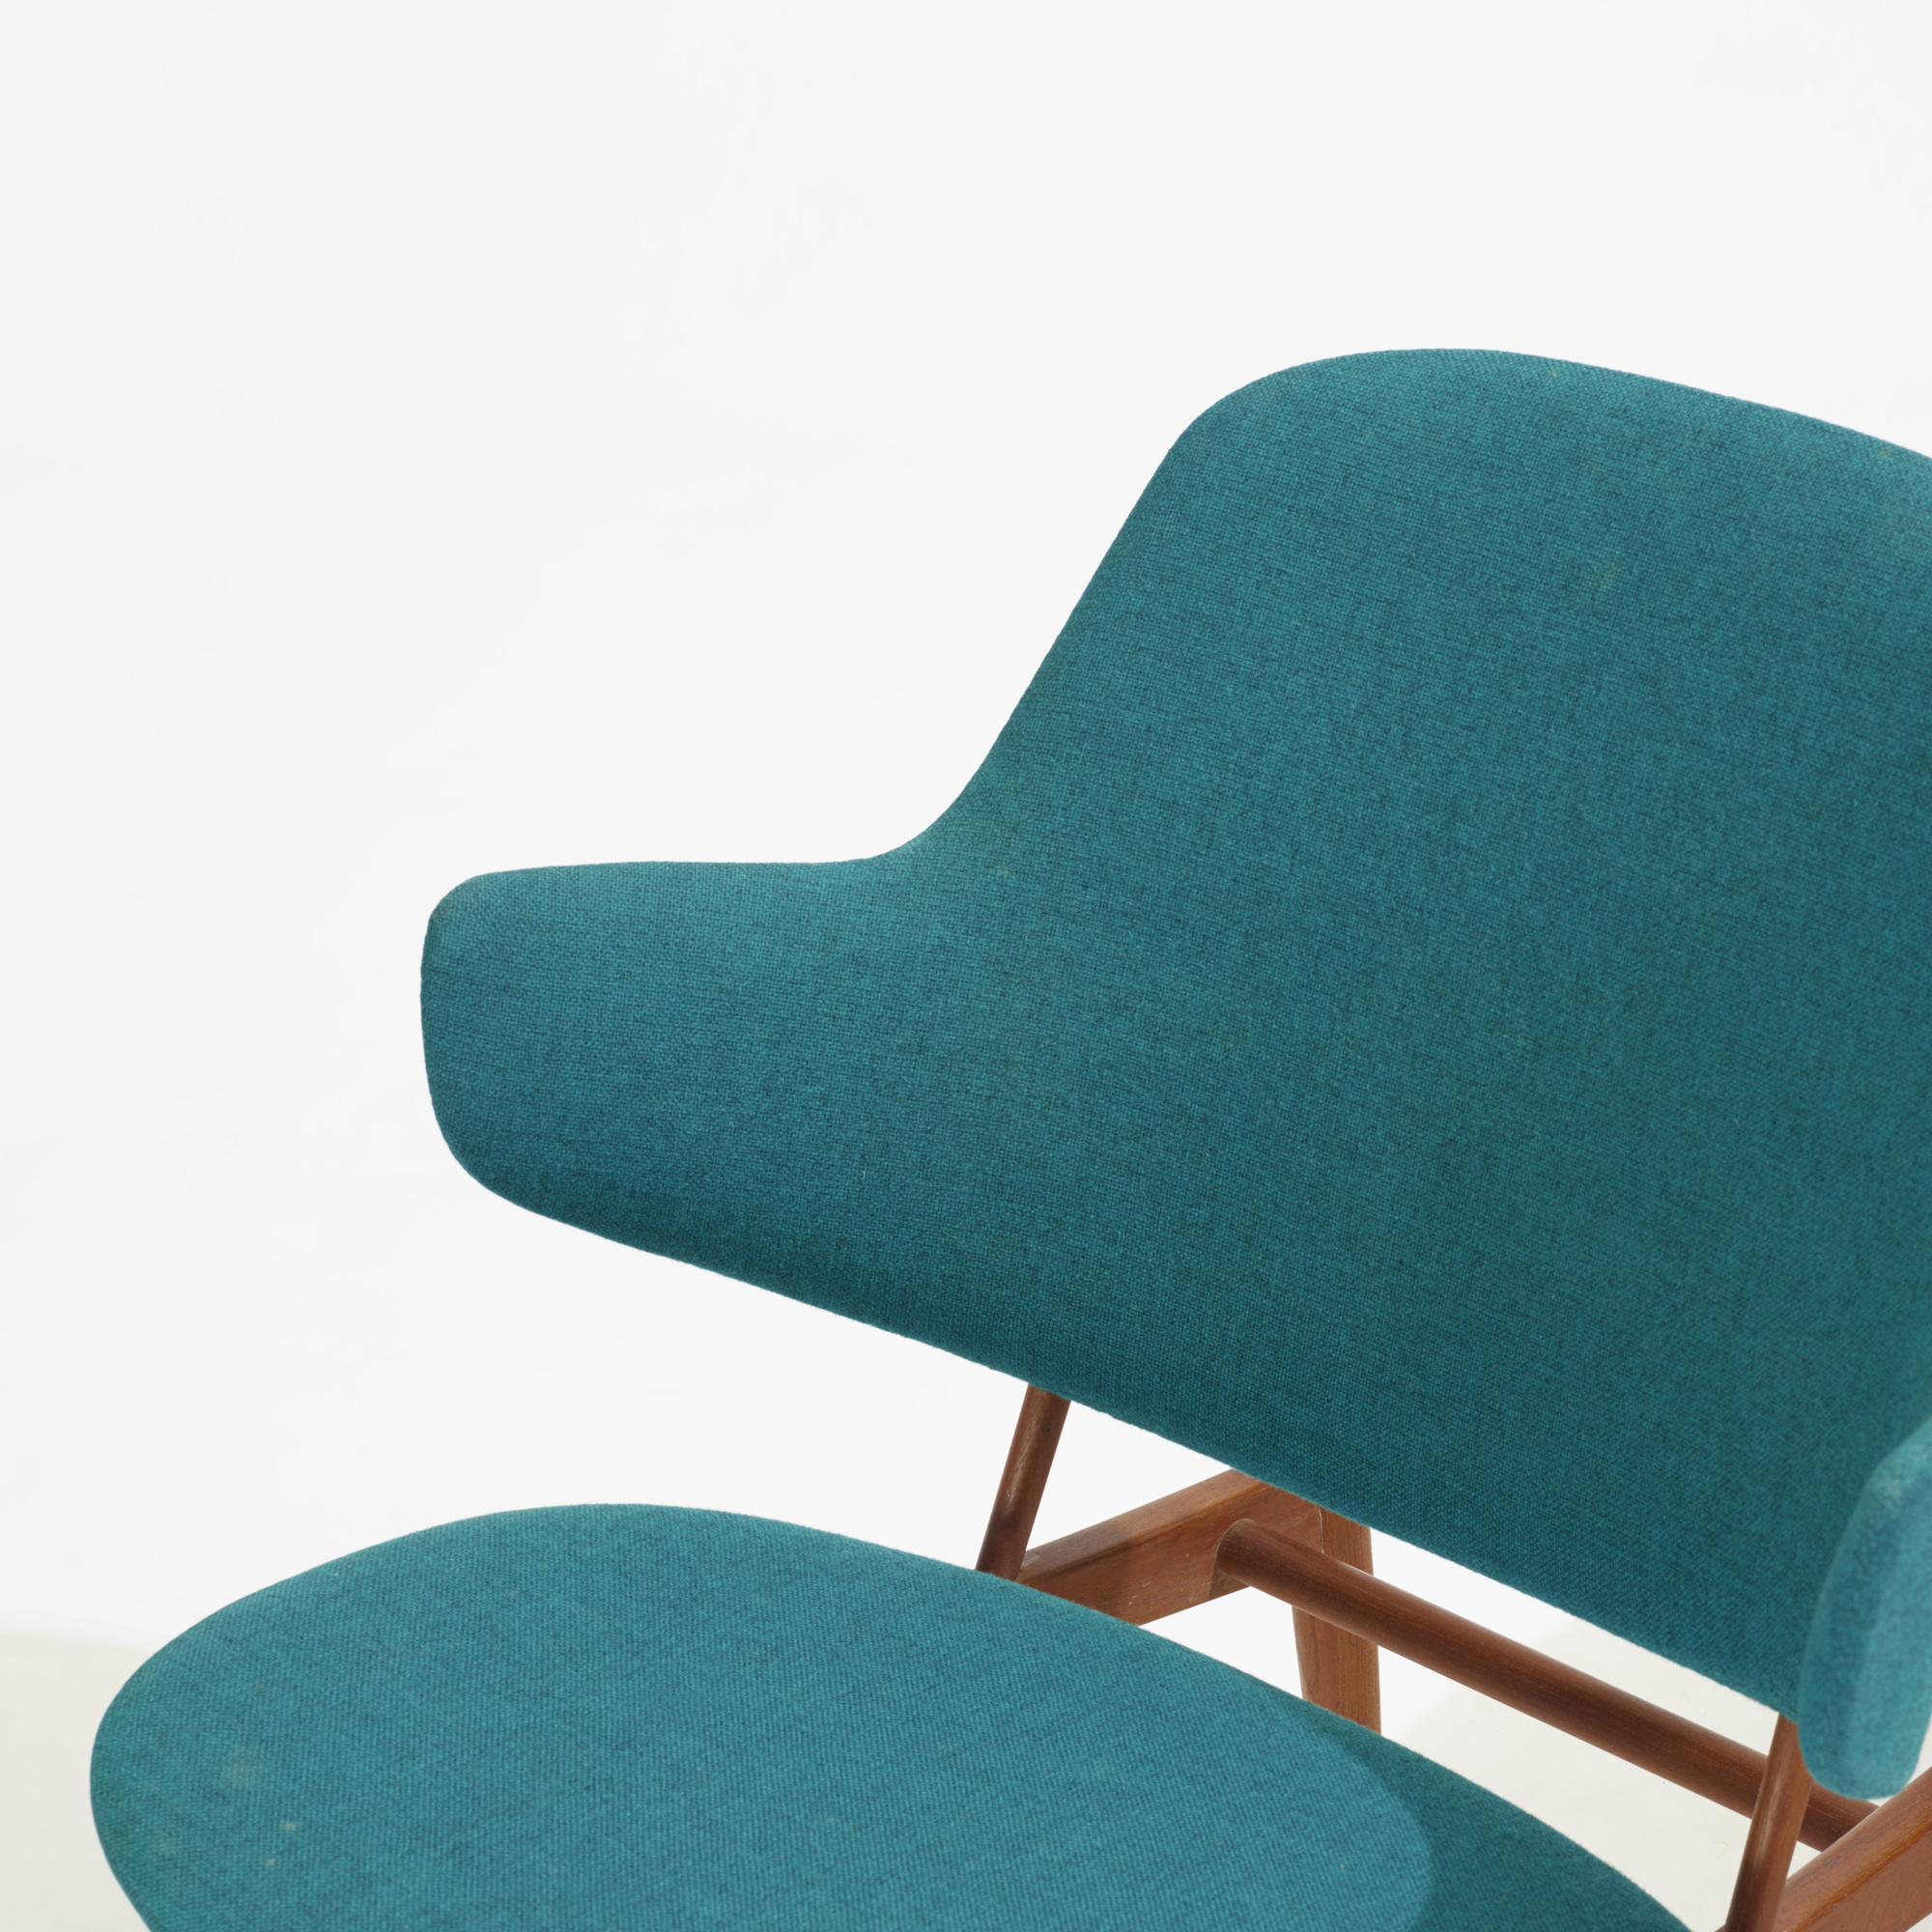 286: Ib Kofod-Larsen / lounge chairs, pair (3 of 3)